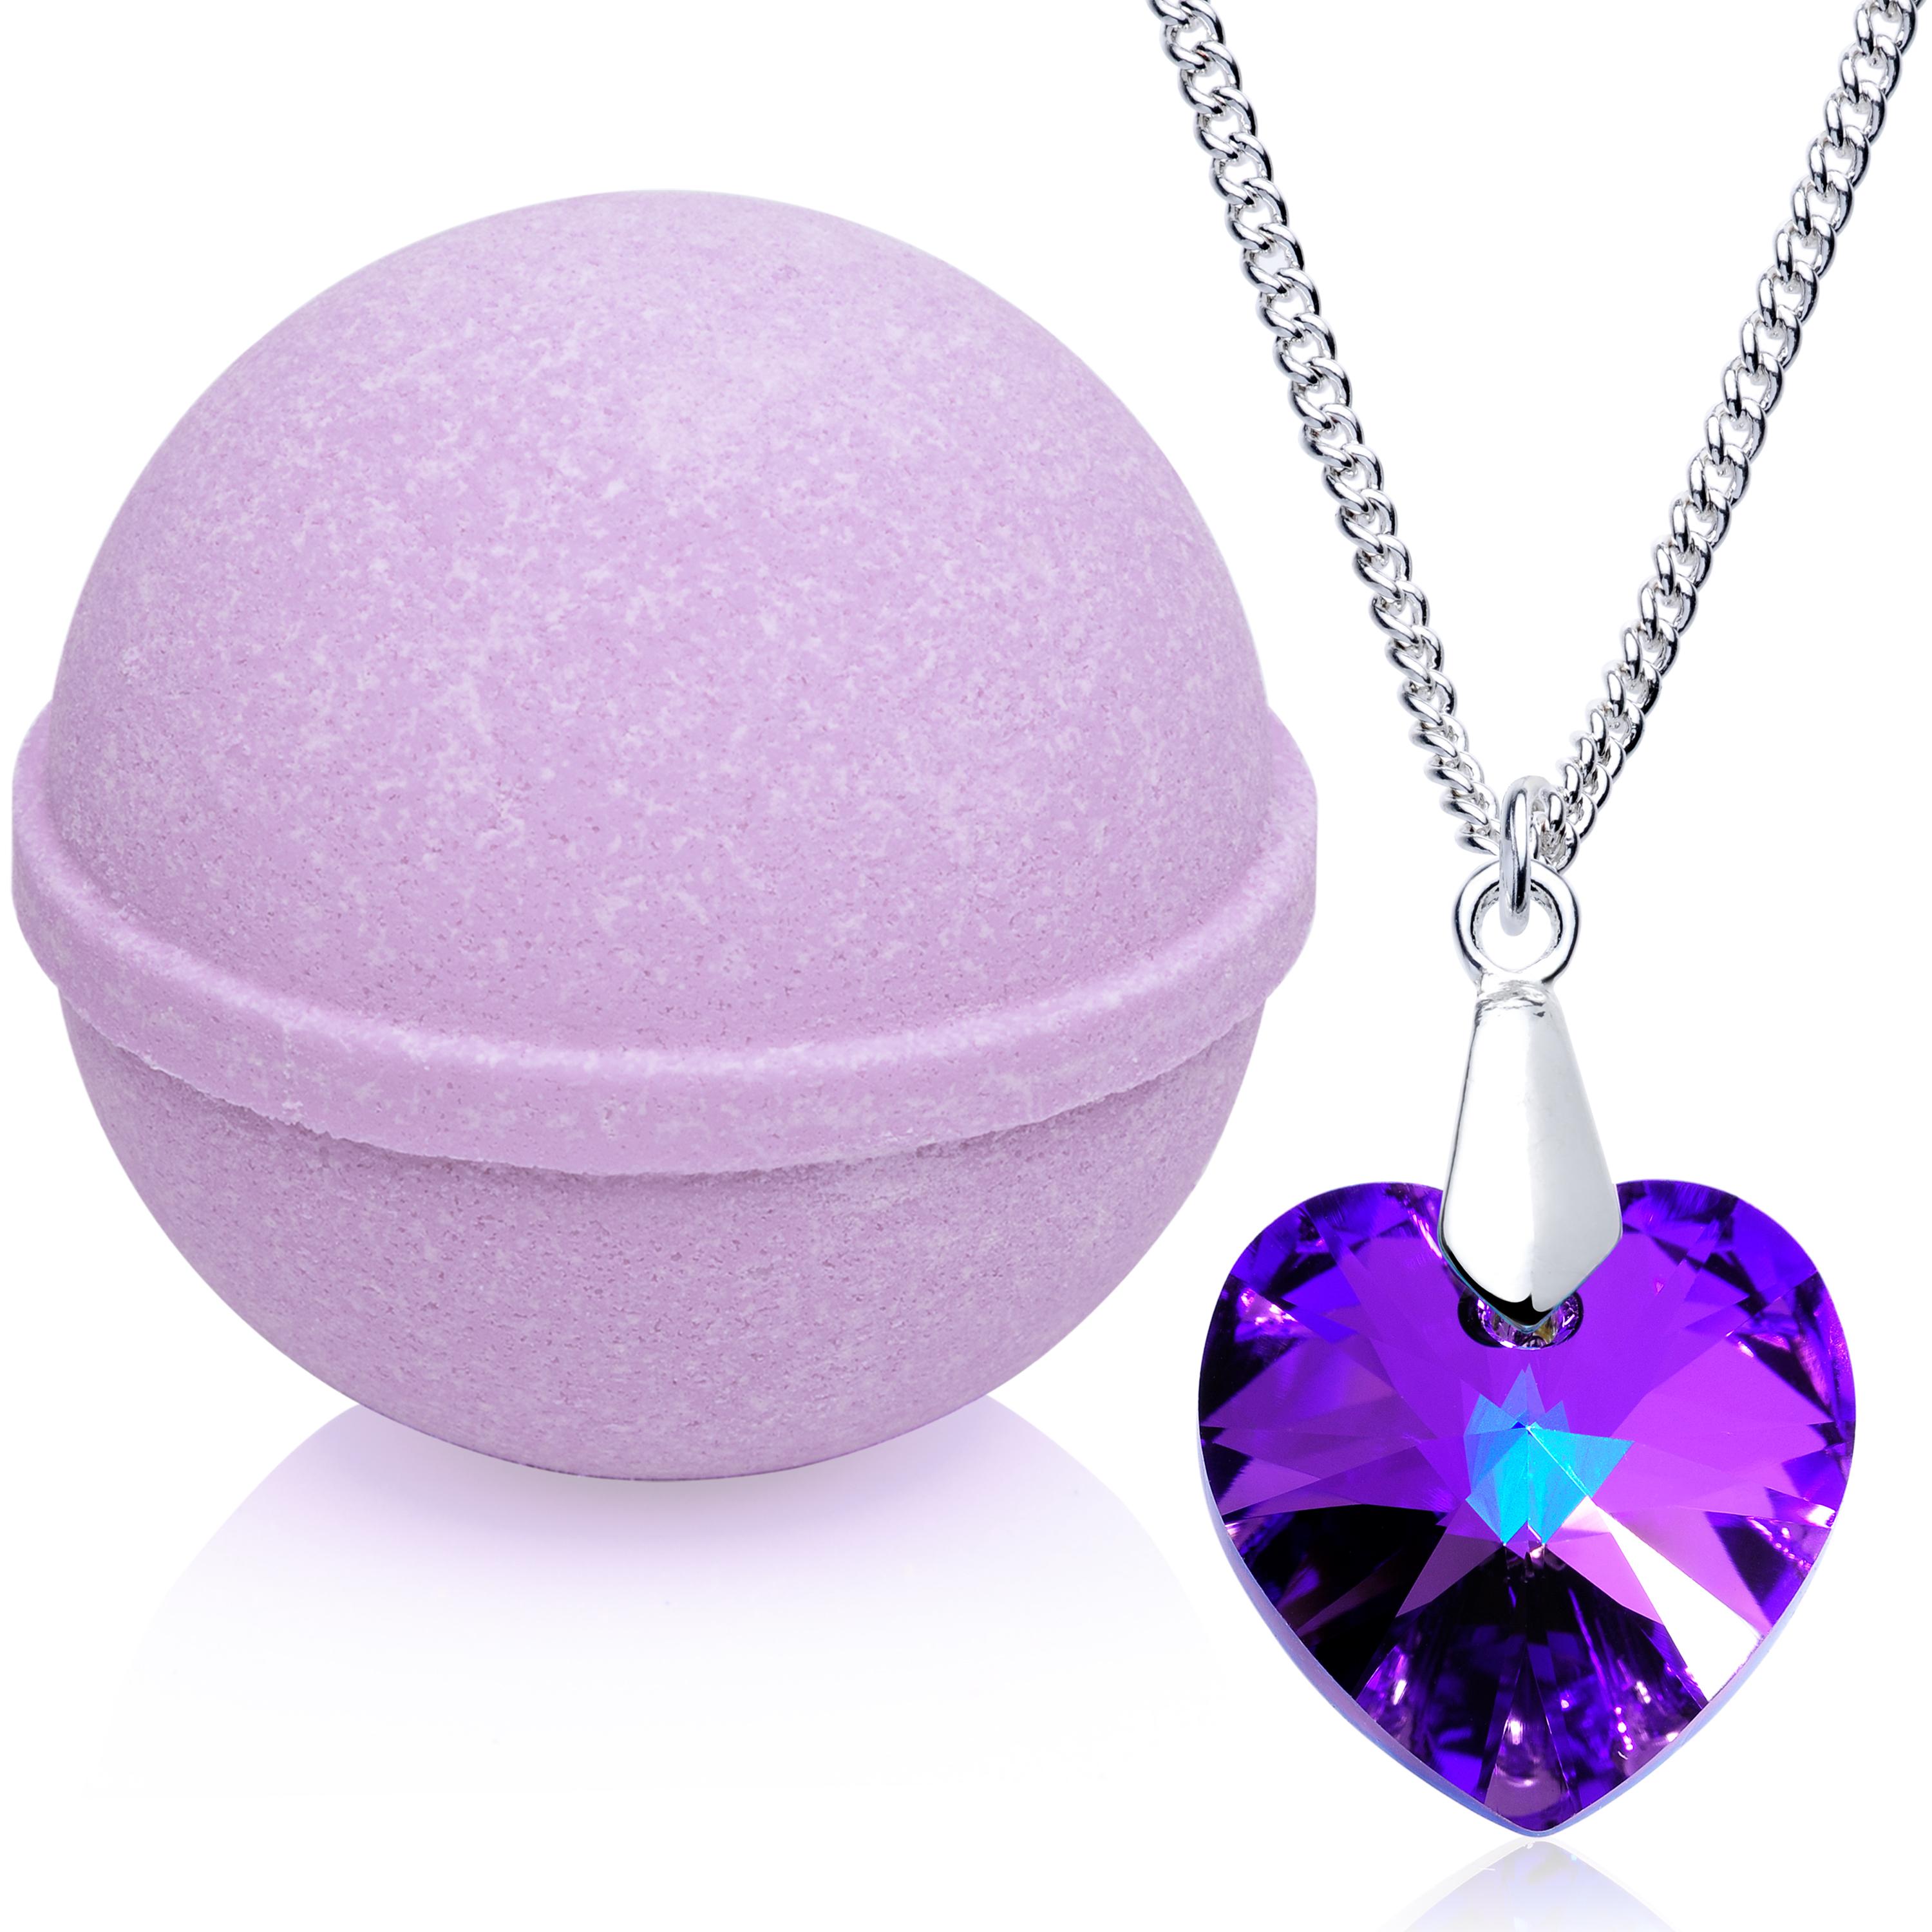 Enliven Me Lavender Bath Bomb with Necklace Created with Swarovski Crystal Extra Large 10 oz. Made in USA